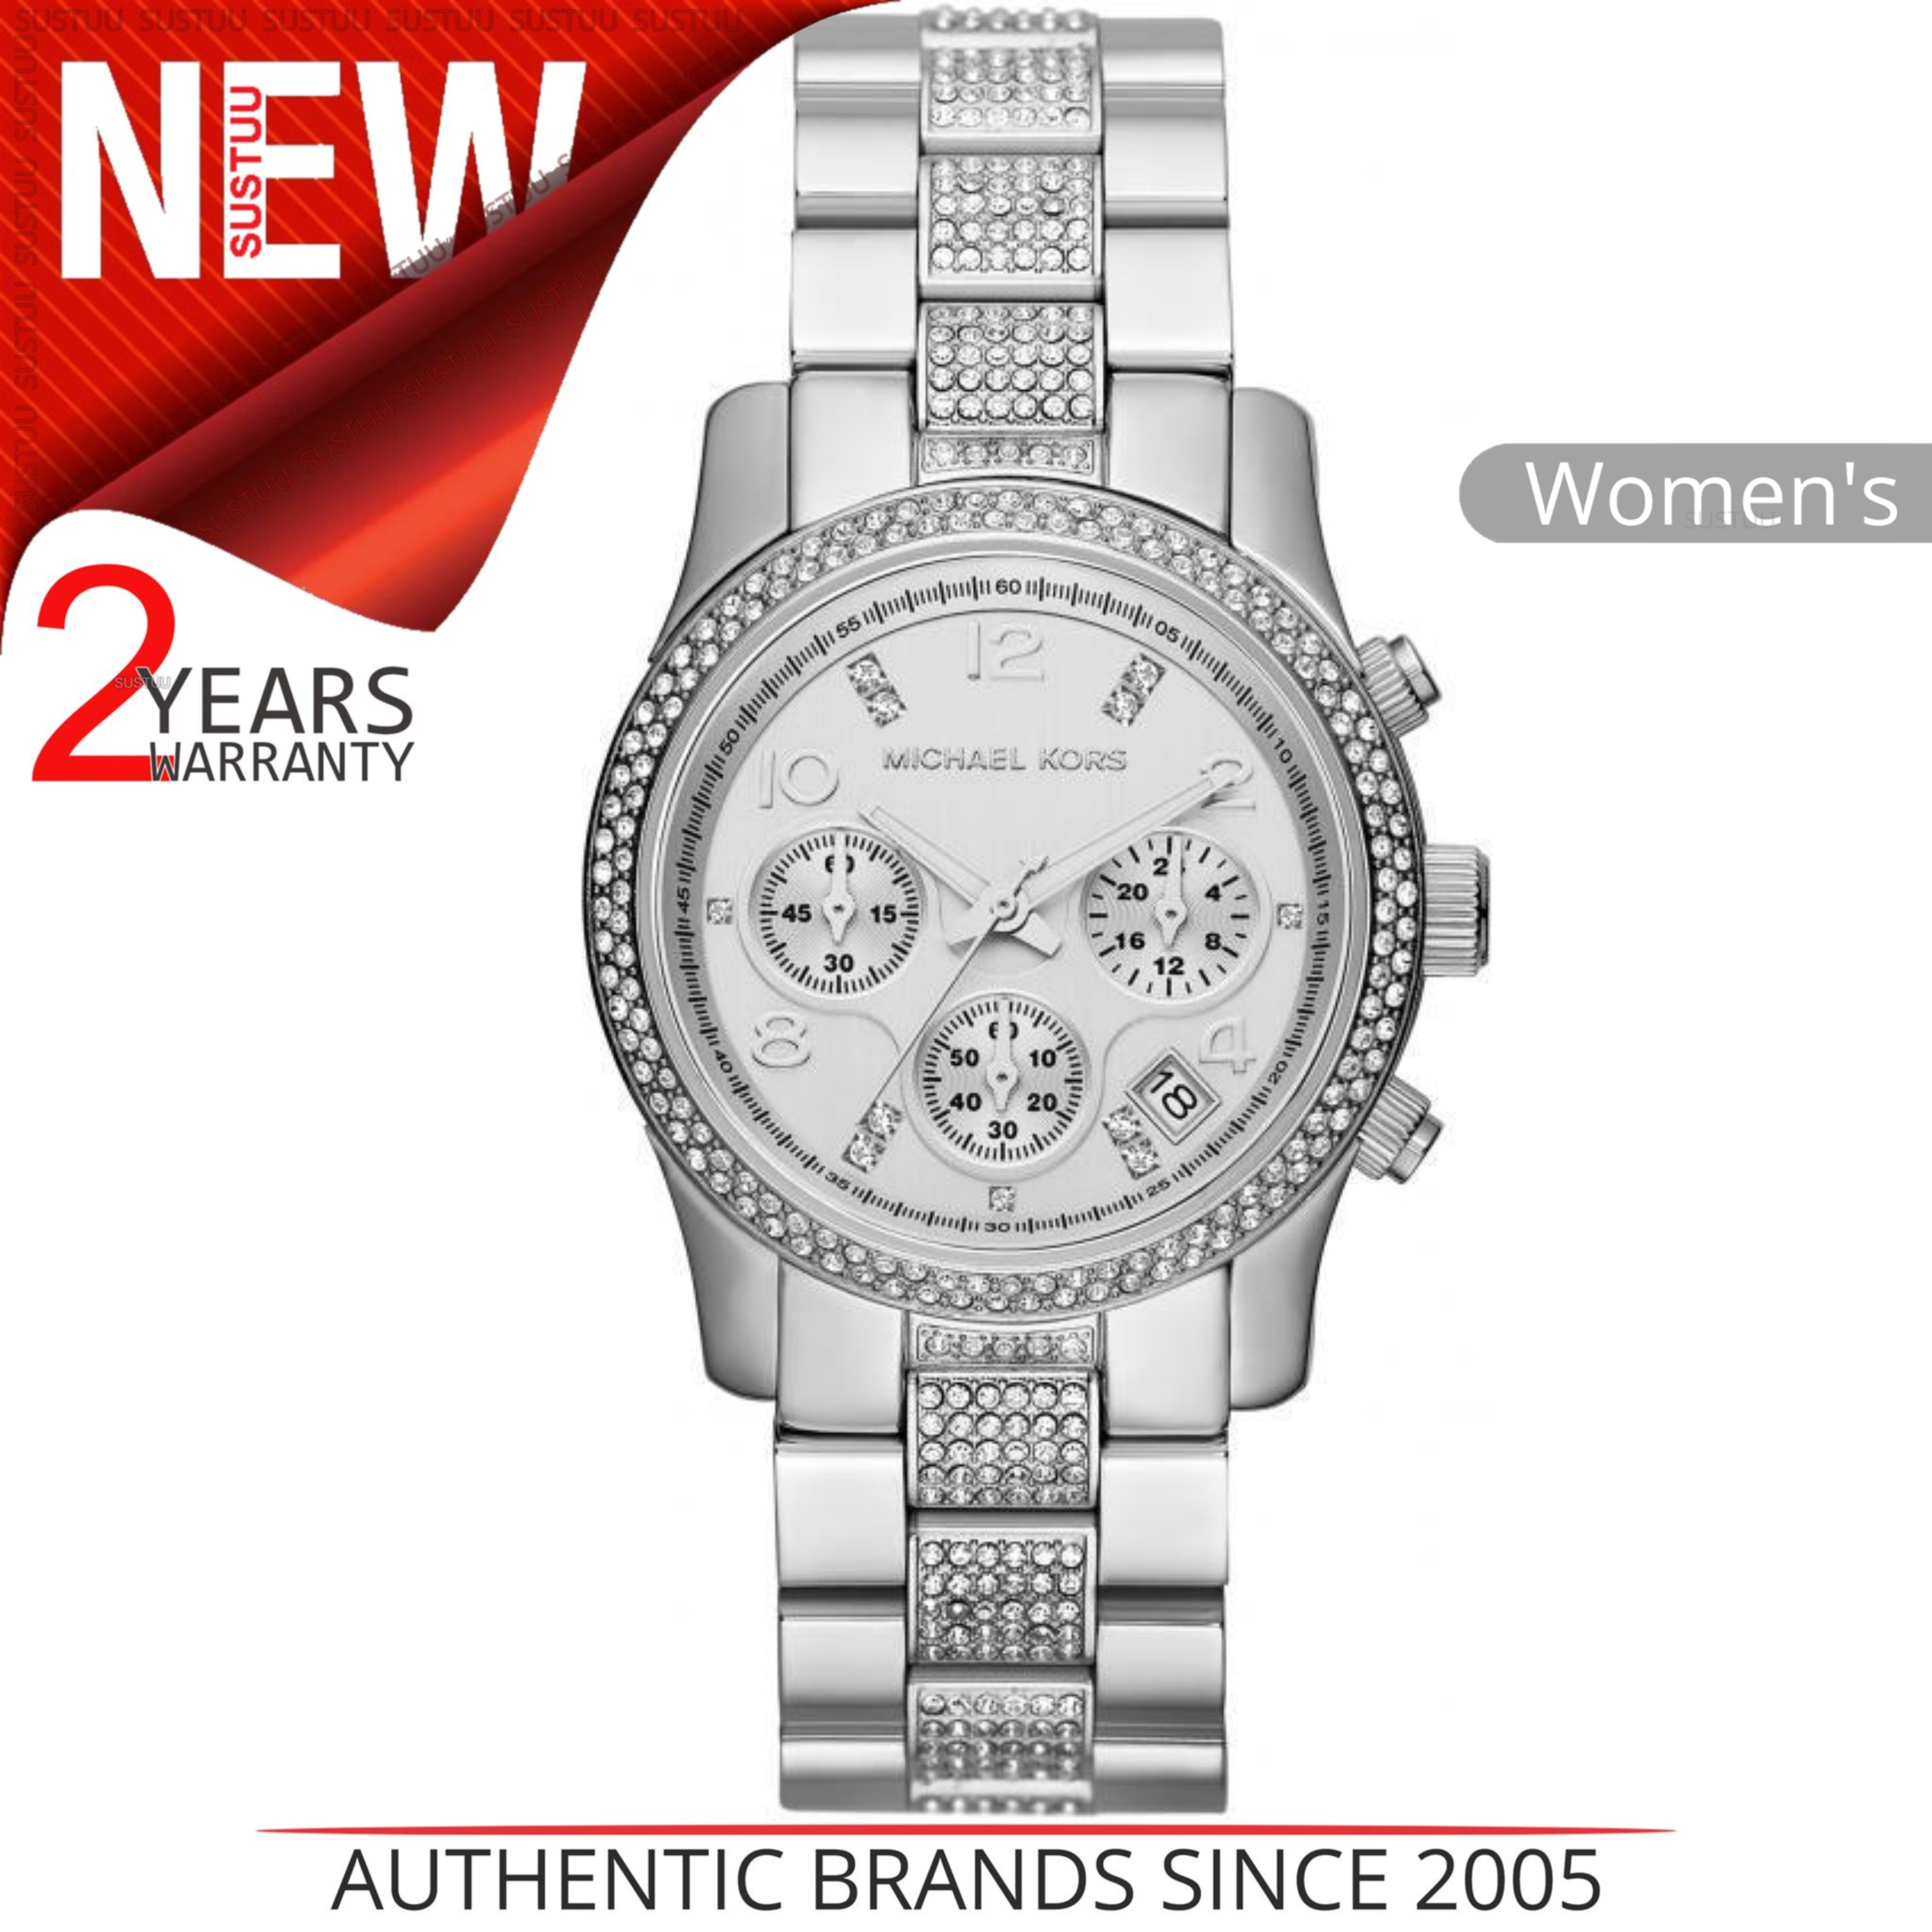 9eb94b2274f5 Details about Michael Kors Runway Women s Watch MK5825│Chronograph  Dial│Stainless Steel Strap